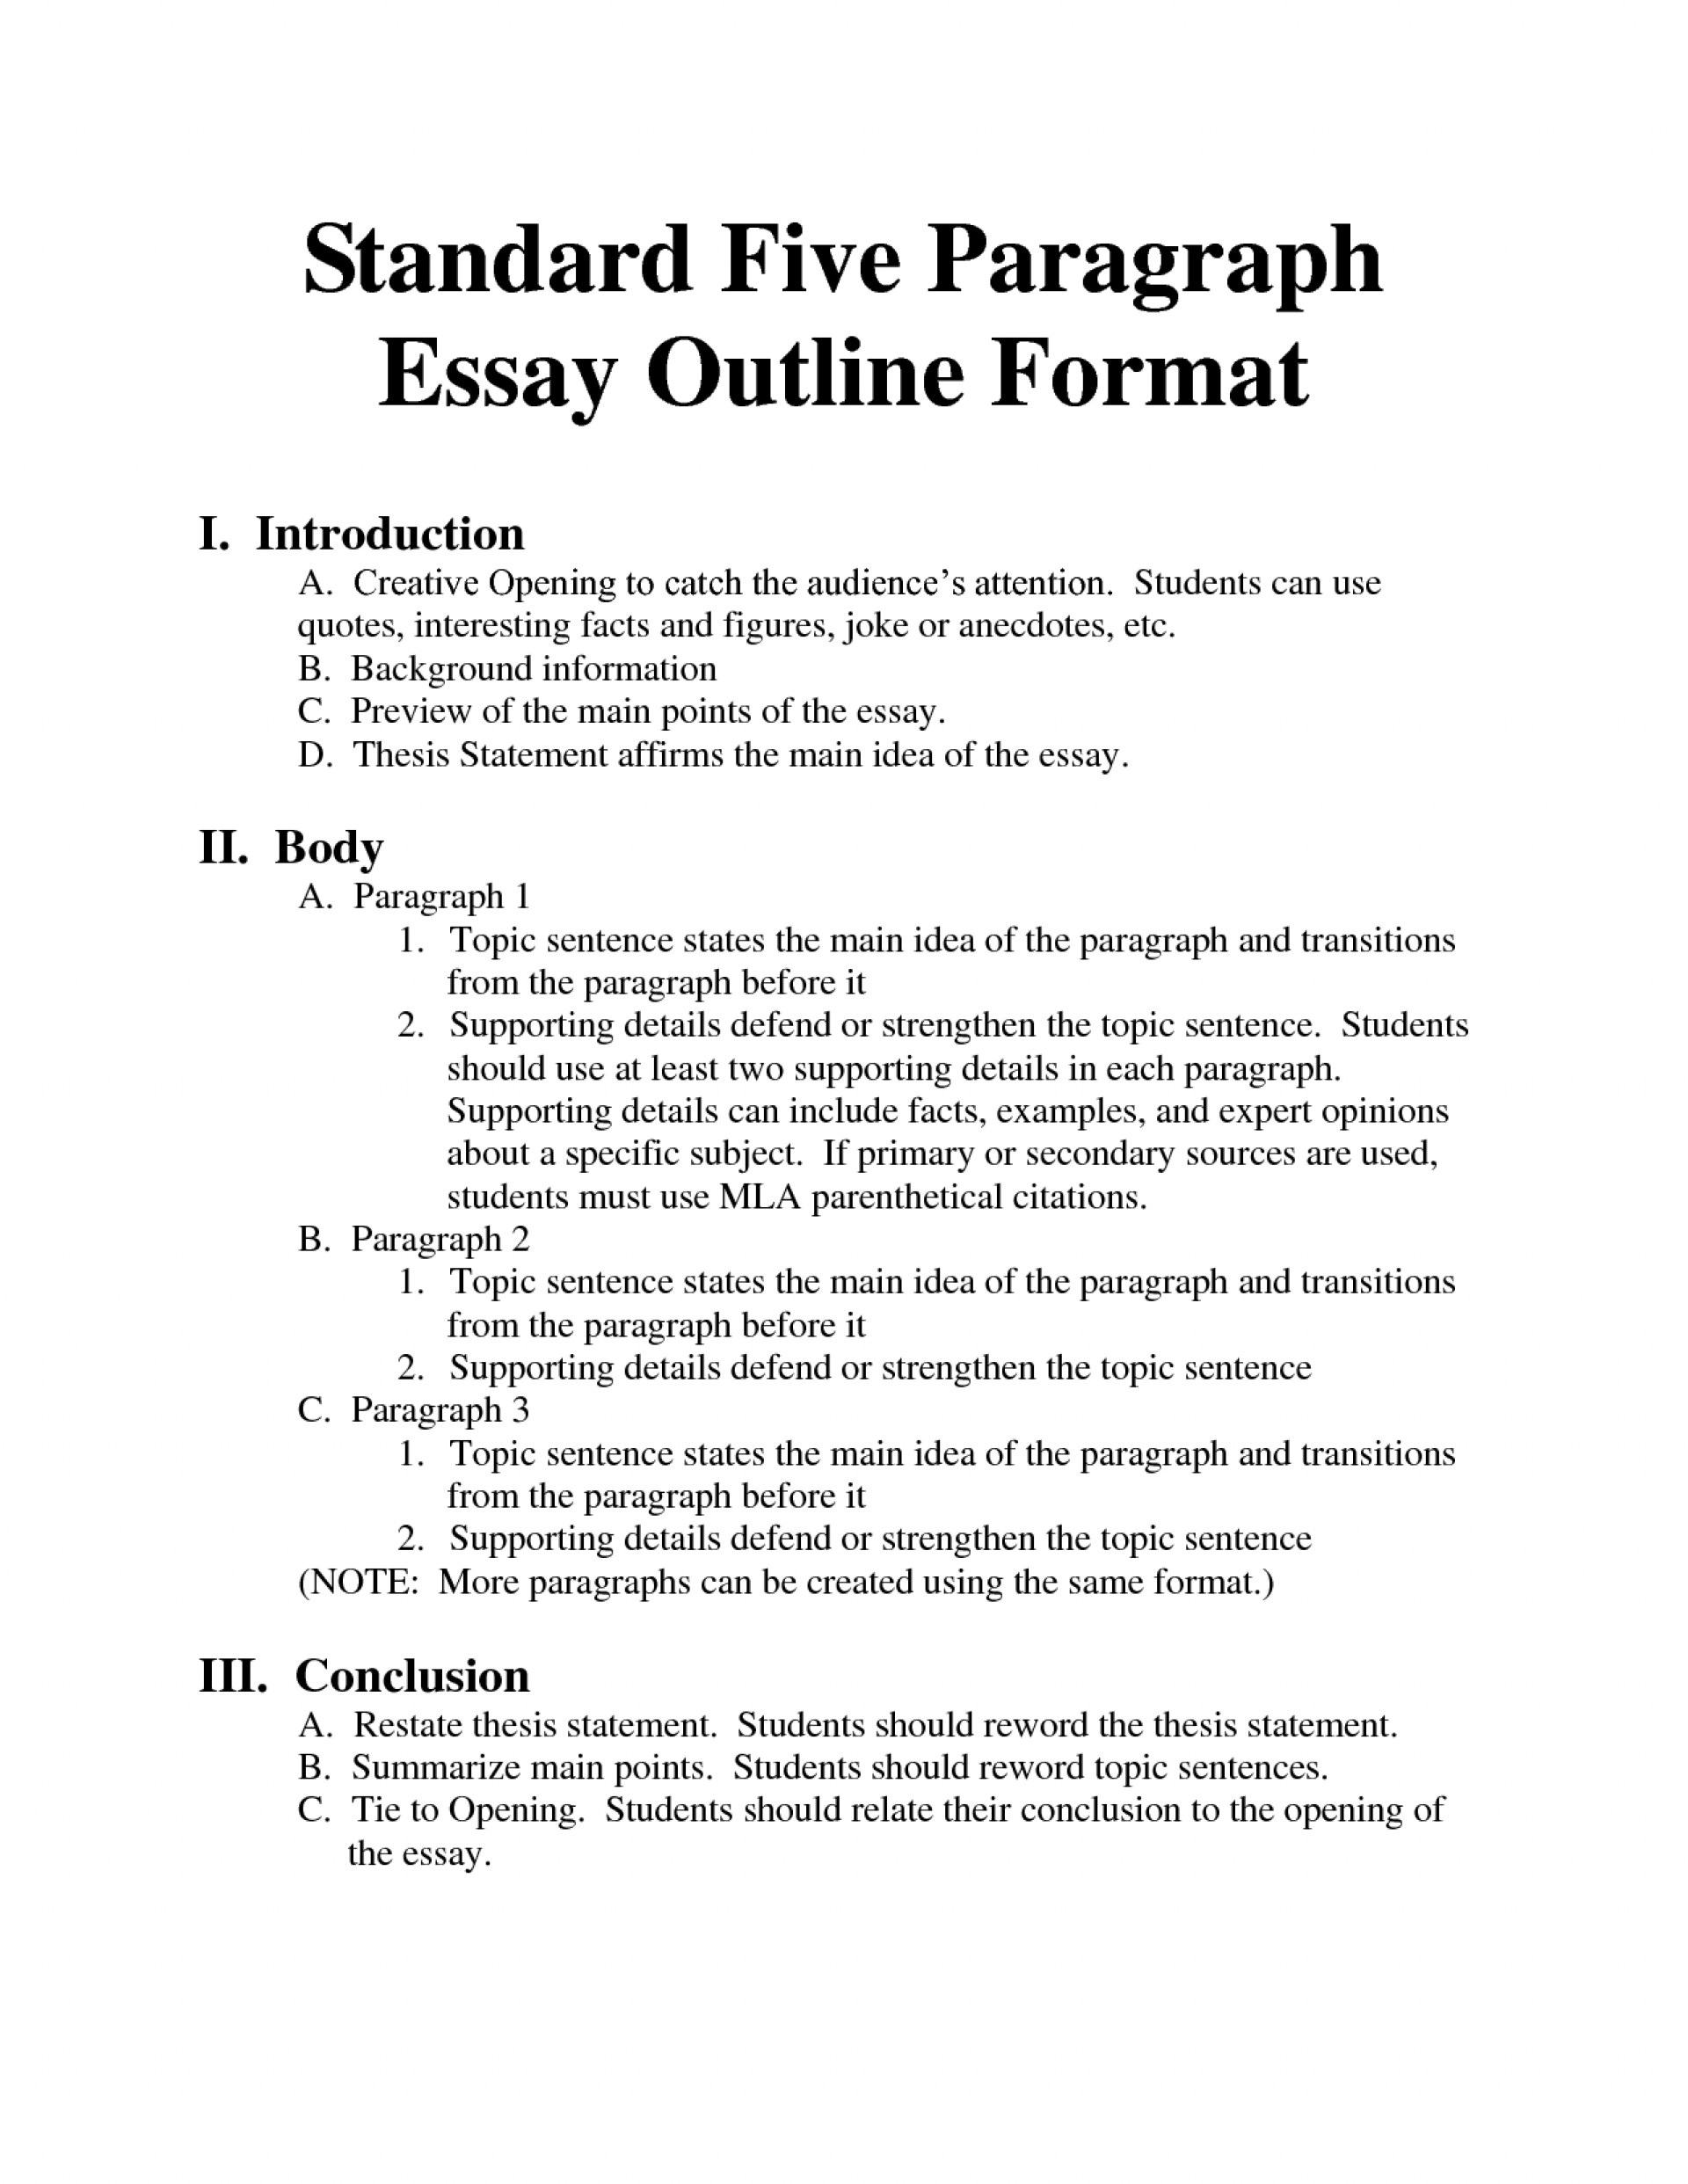 003 What Is An Essay Outline Example Stunning A Hero Argumentative Format What's Look Like 1920